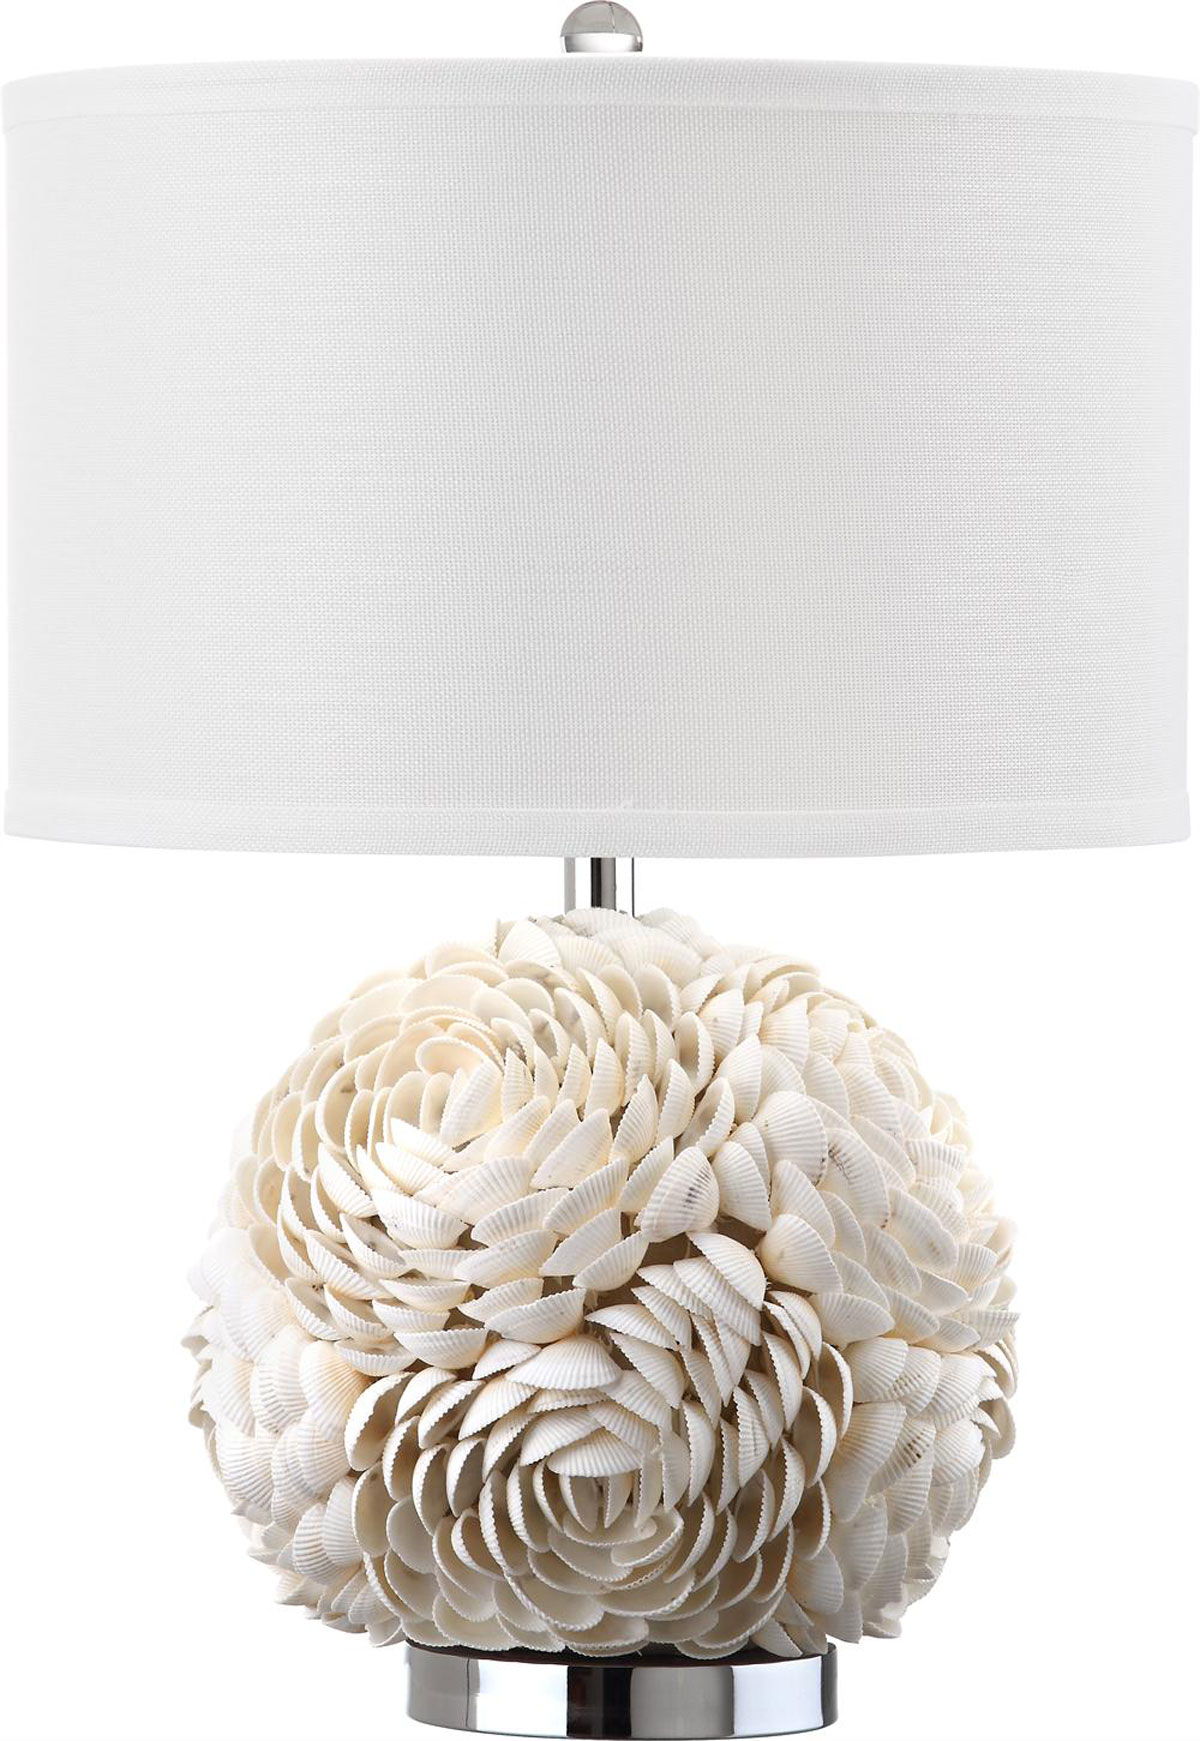 PAULEY 23 INCH H TABLE LAMP LIT4297A